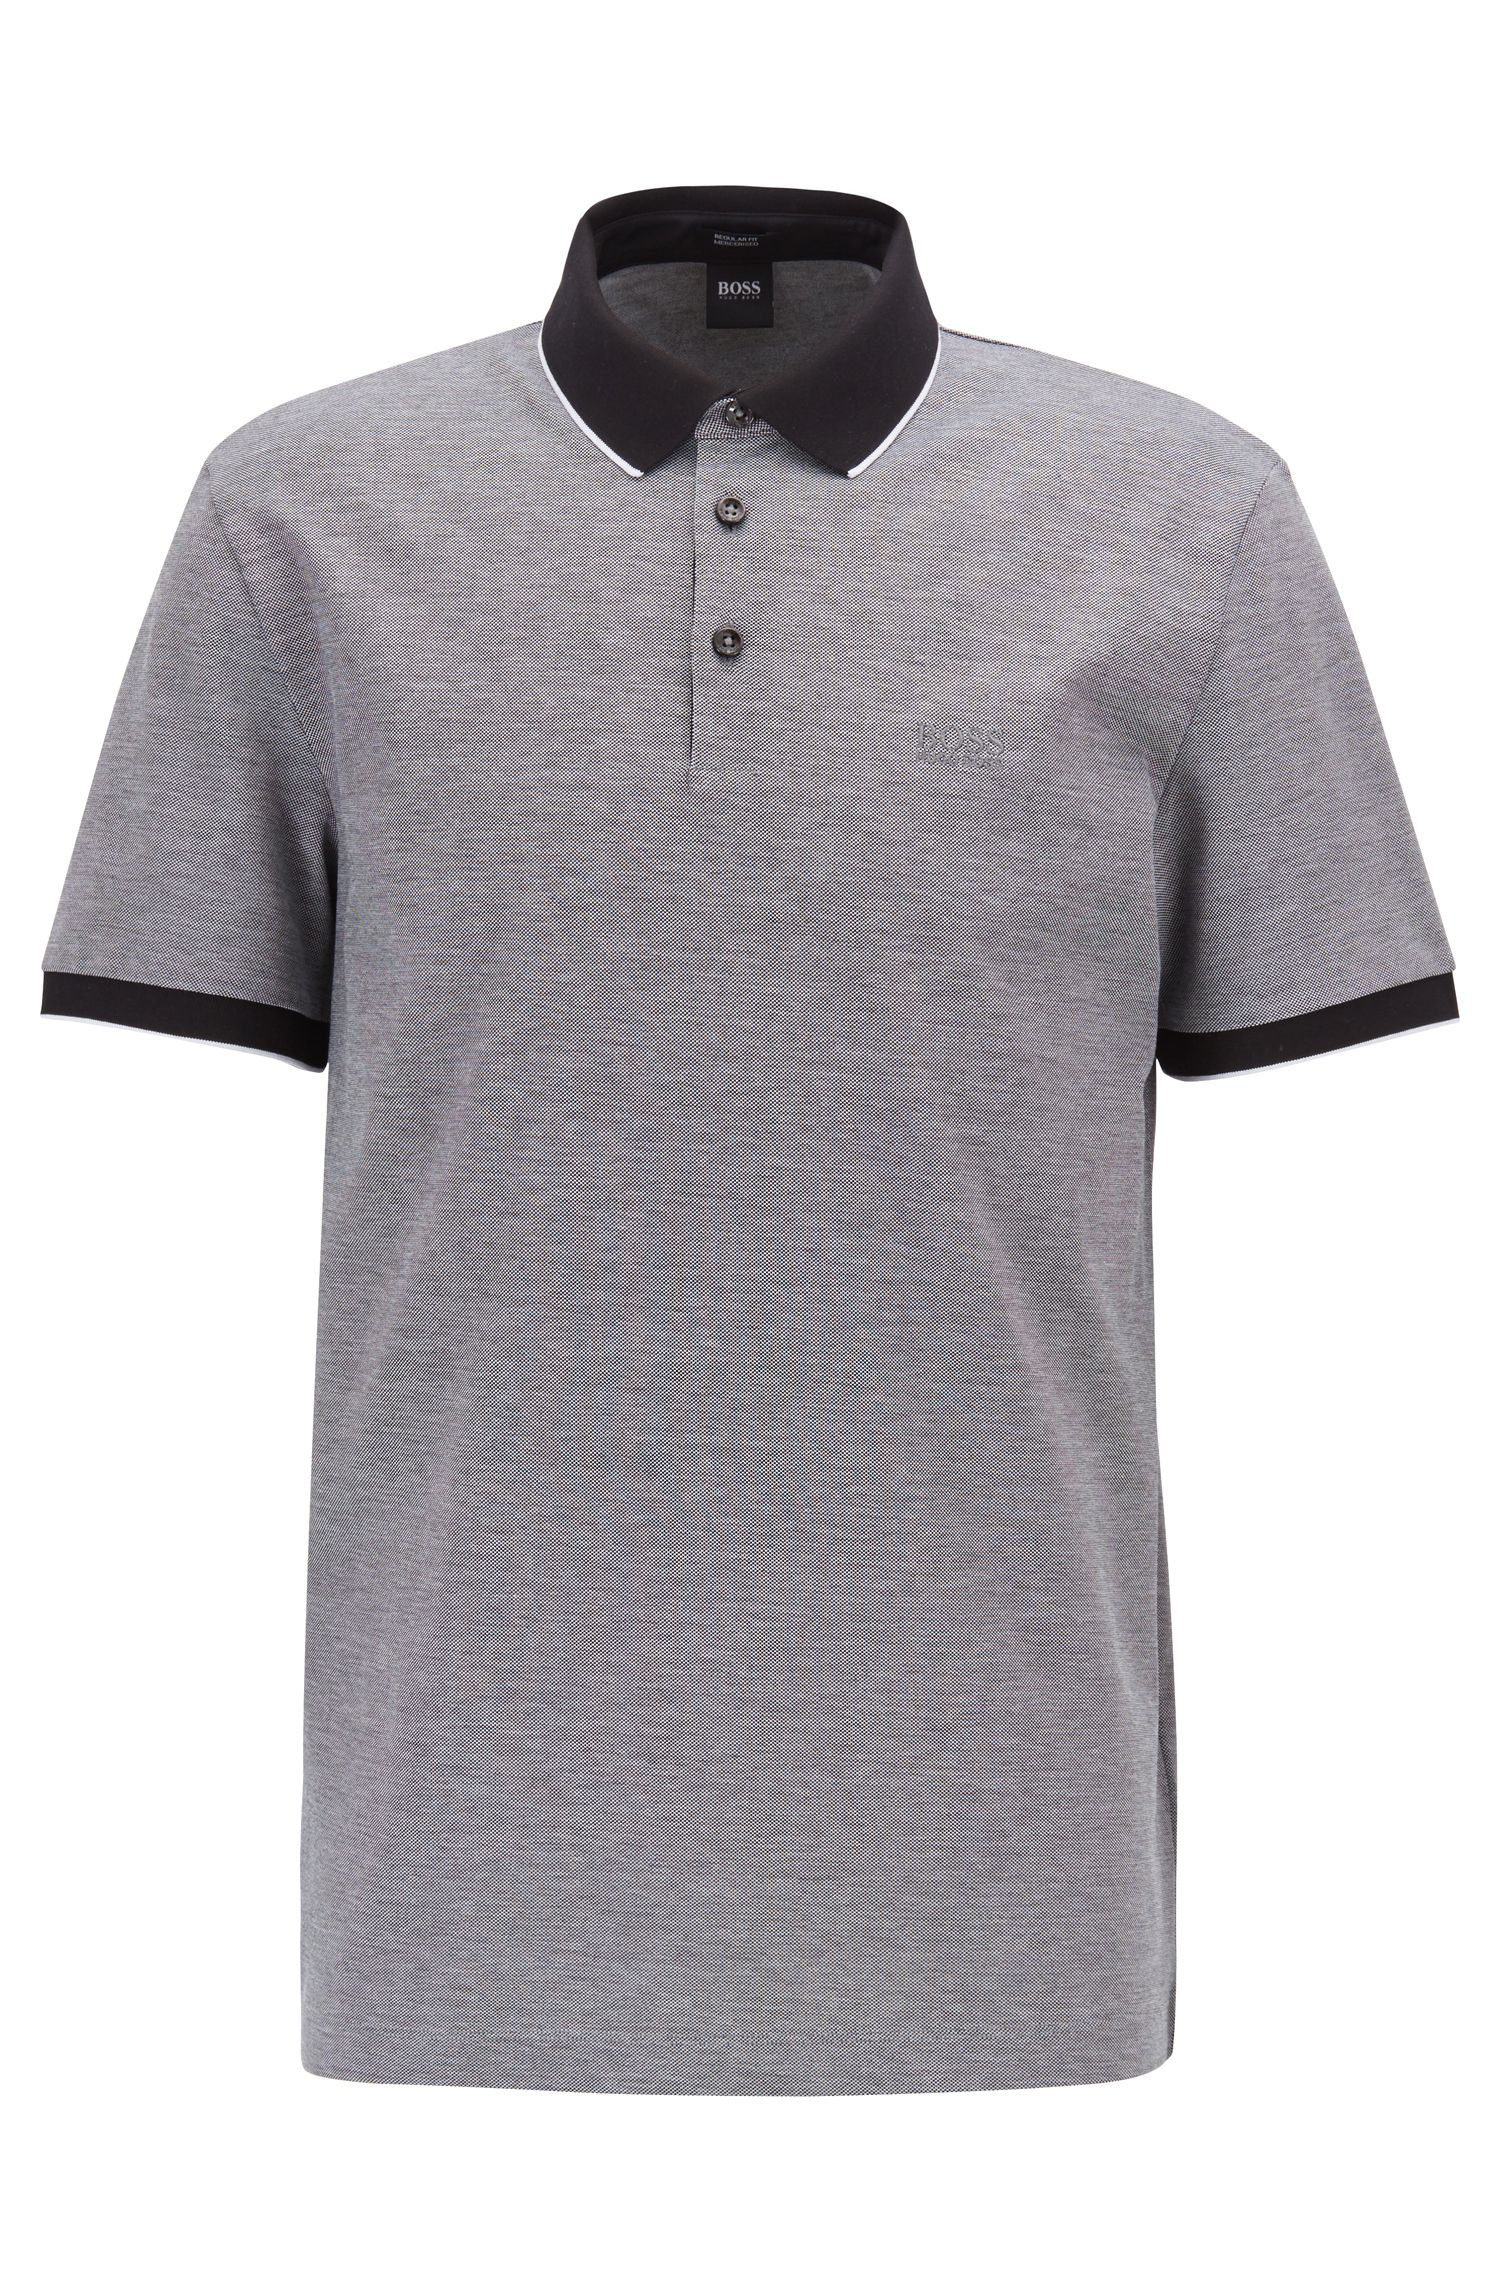 Regular-fit polo shirt in two-tone Oxford piqué, Black